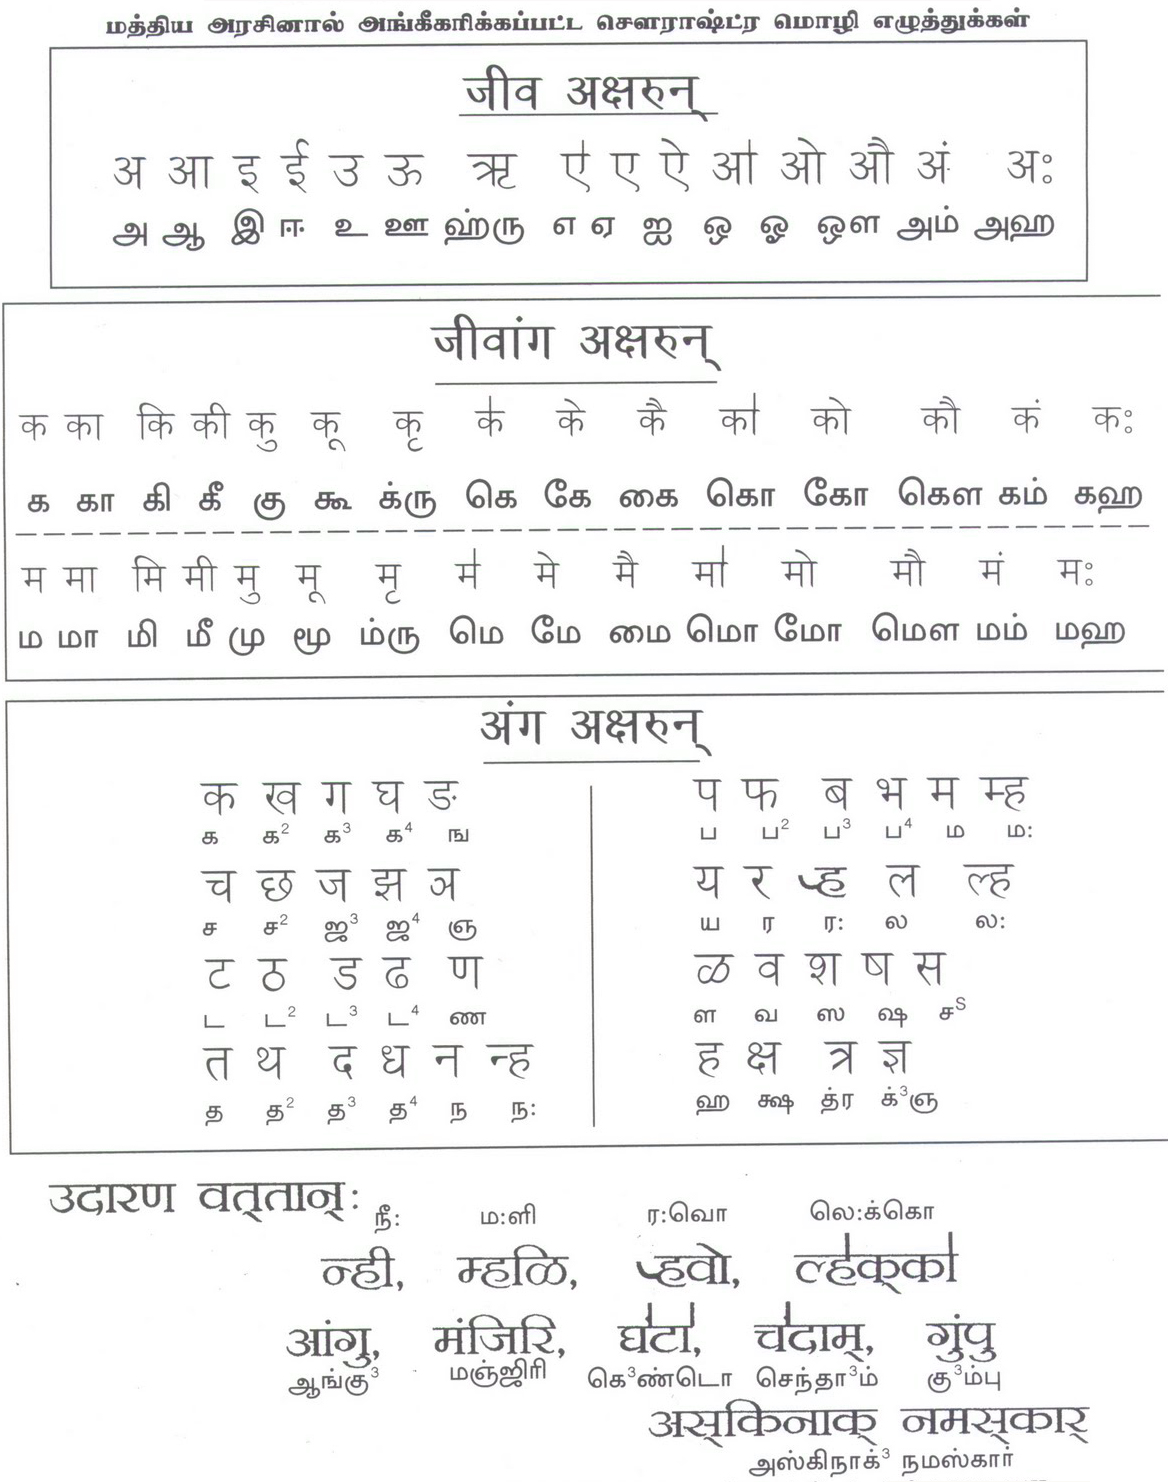 Alphabet Chart With Pictures: Sourashtra-alphabets-lipi-letters.jpg - Wikimedia Commons,Chart